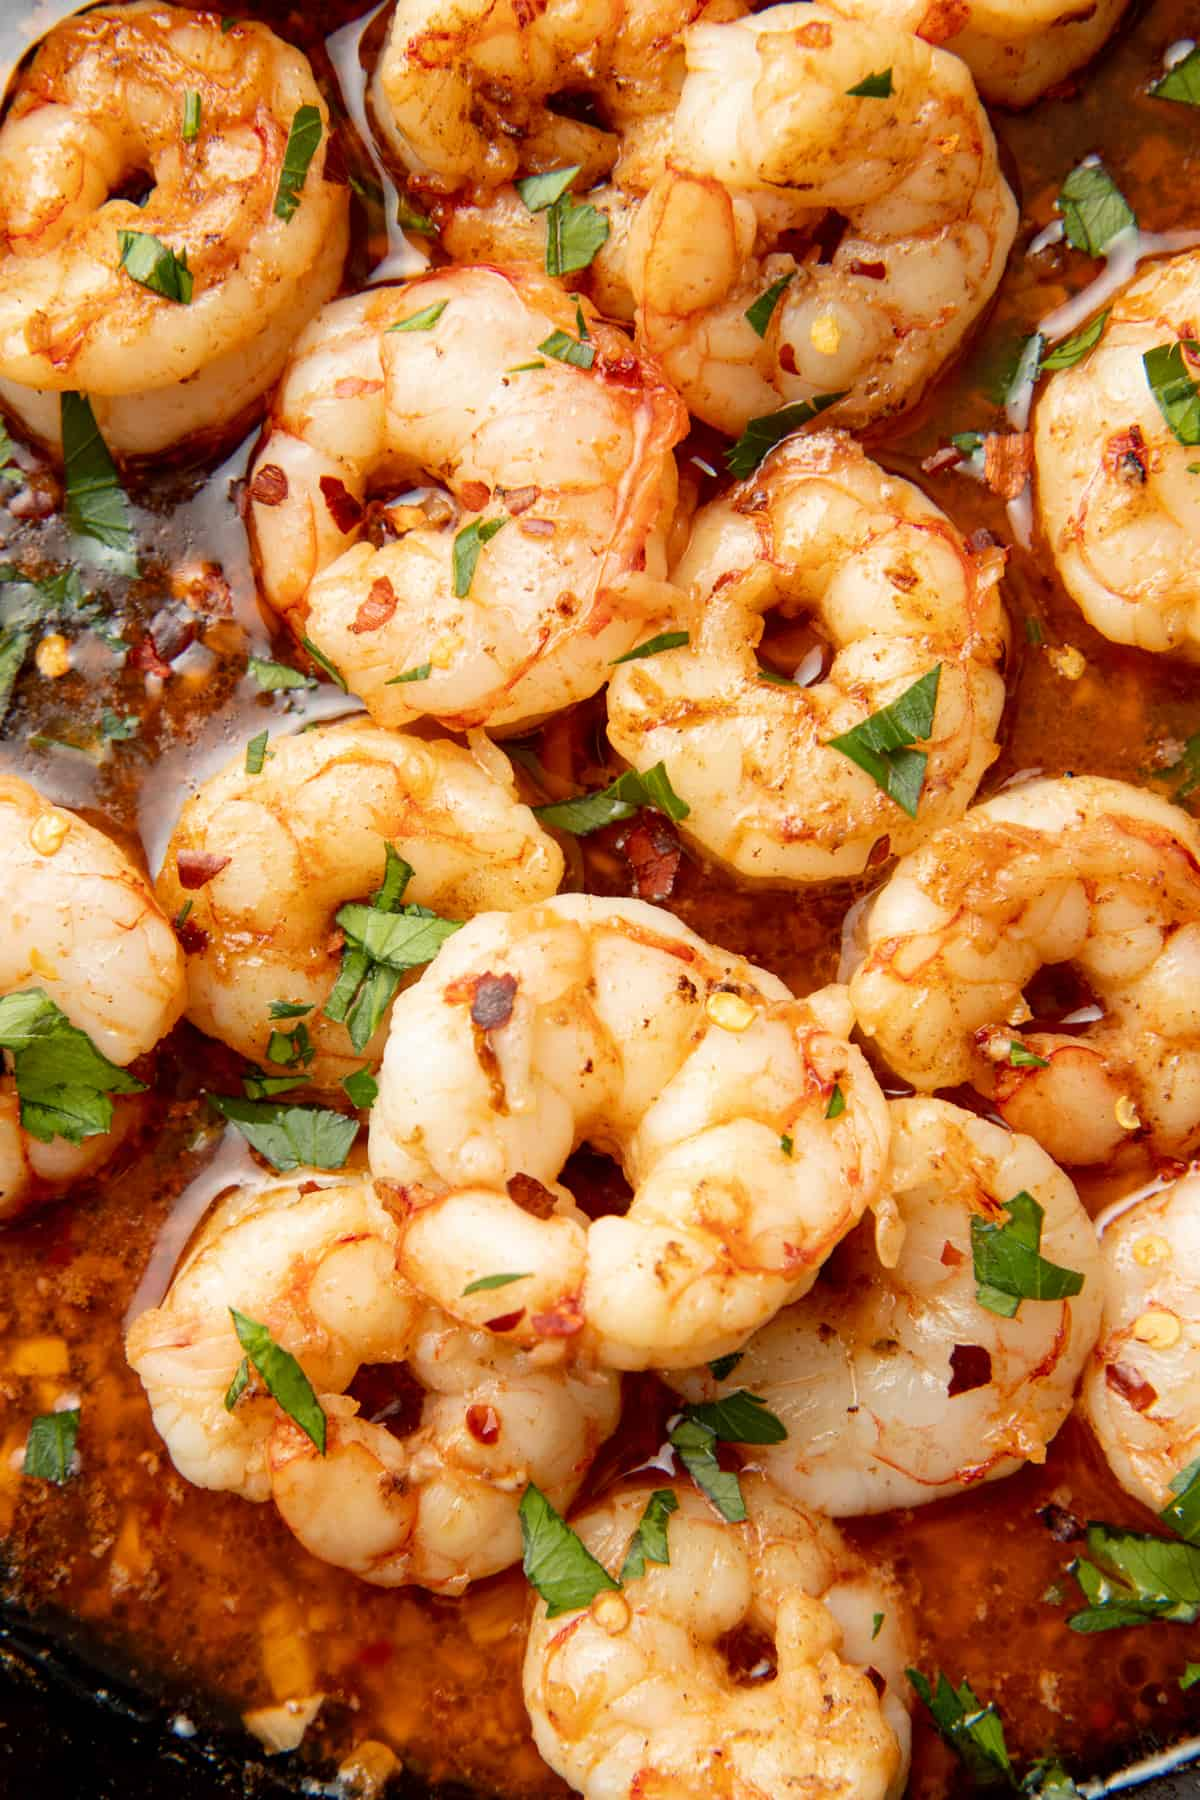 Cooked shrimp sit in sauce.